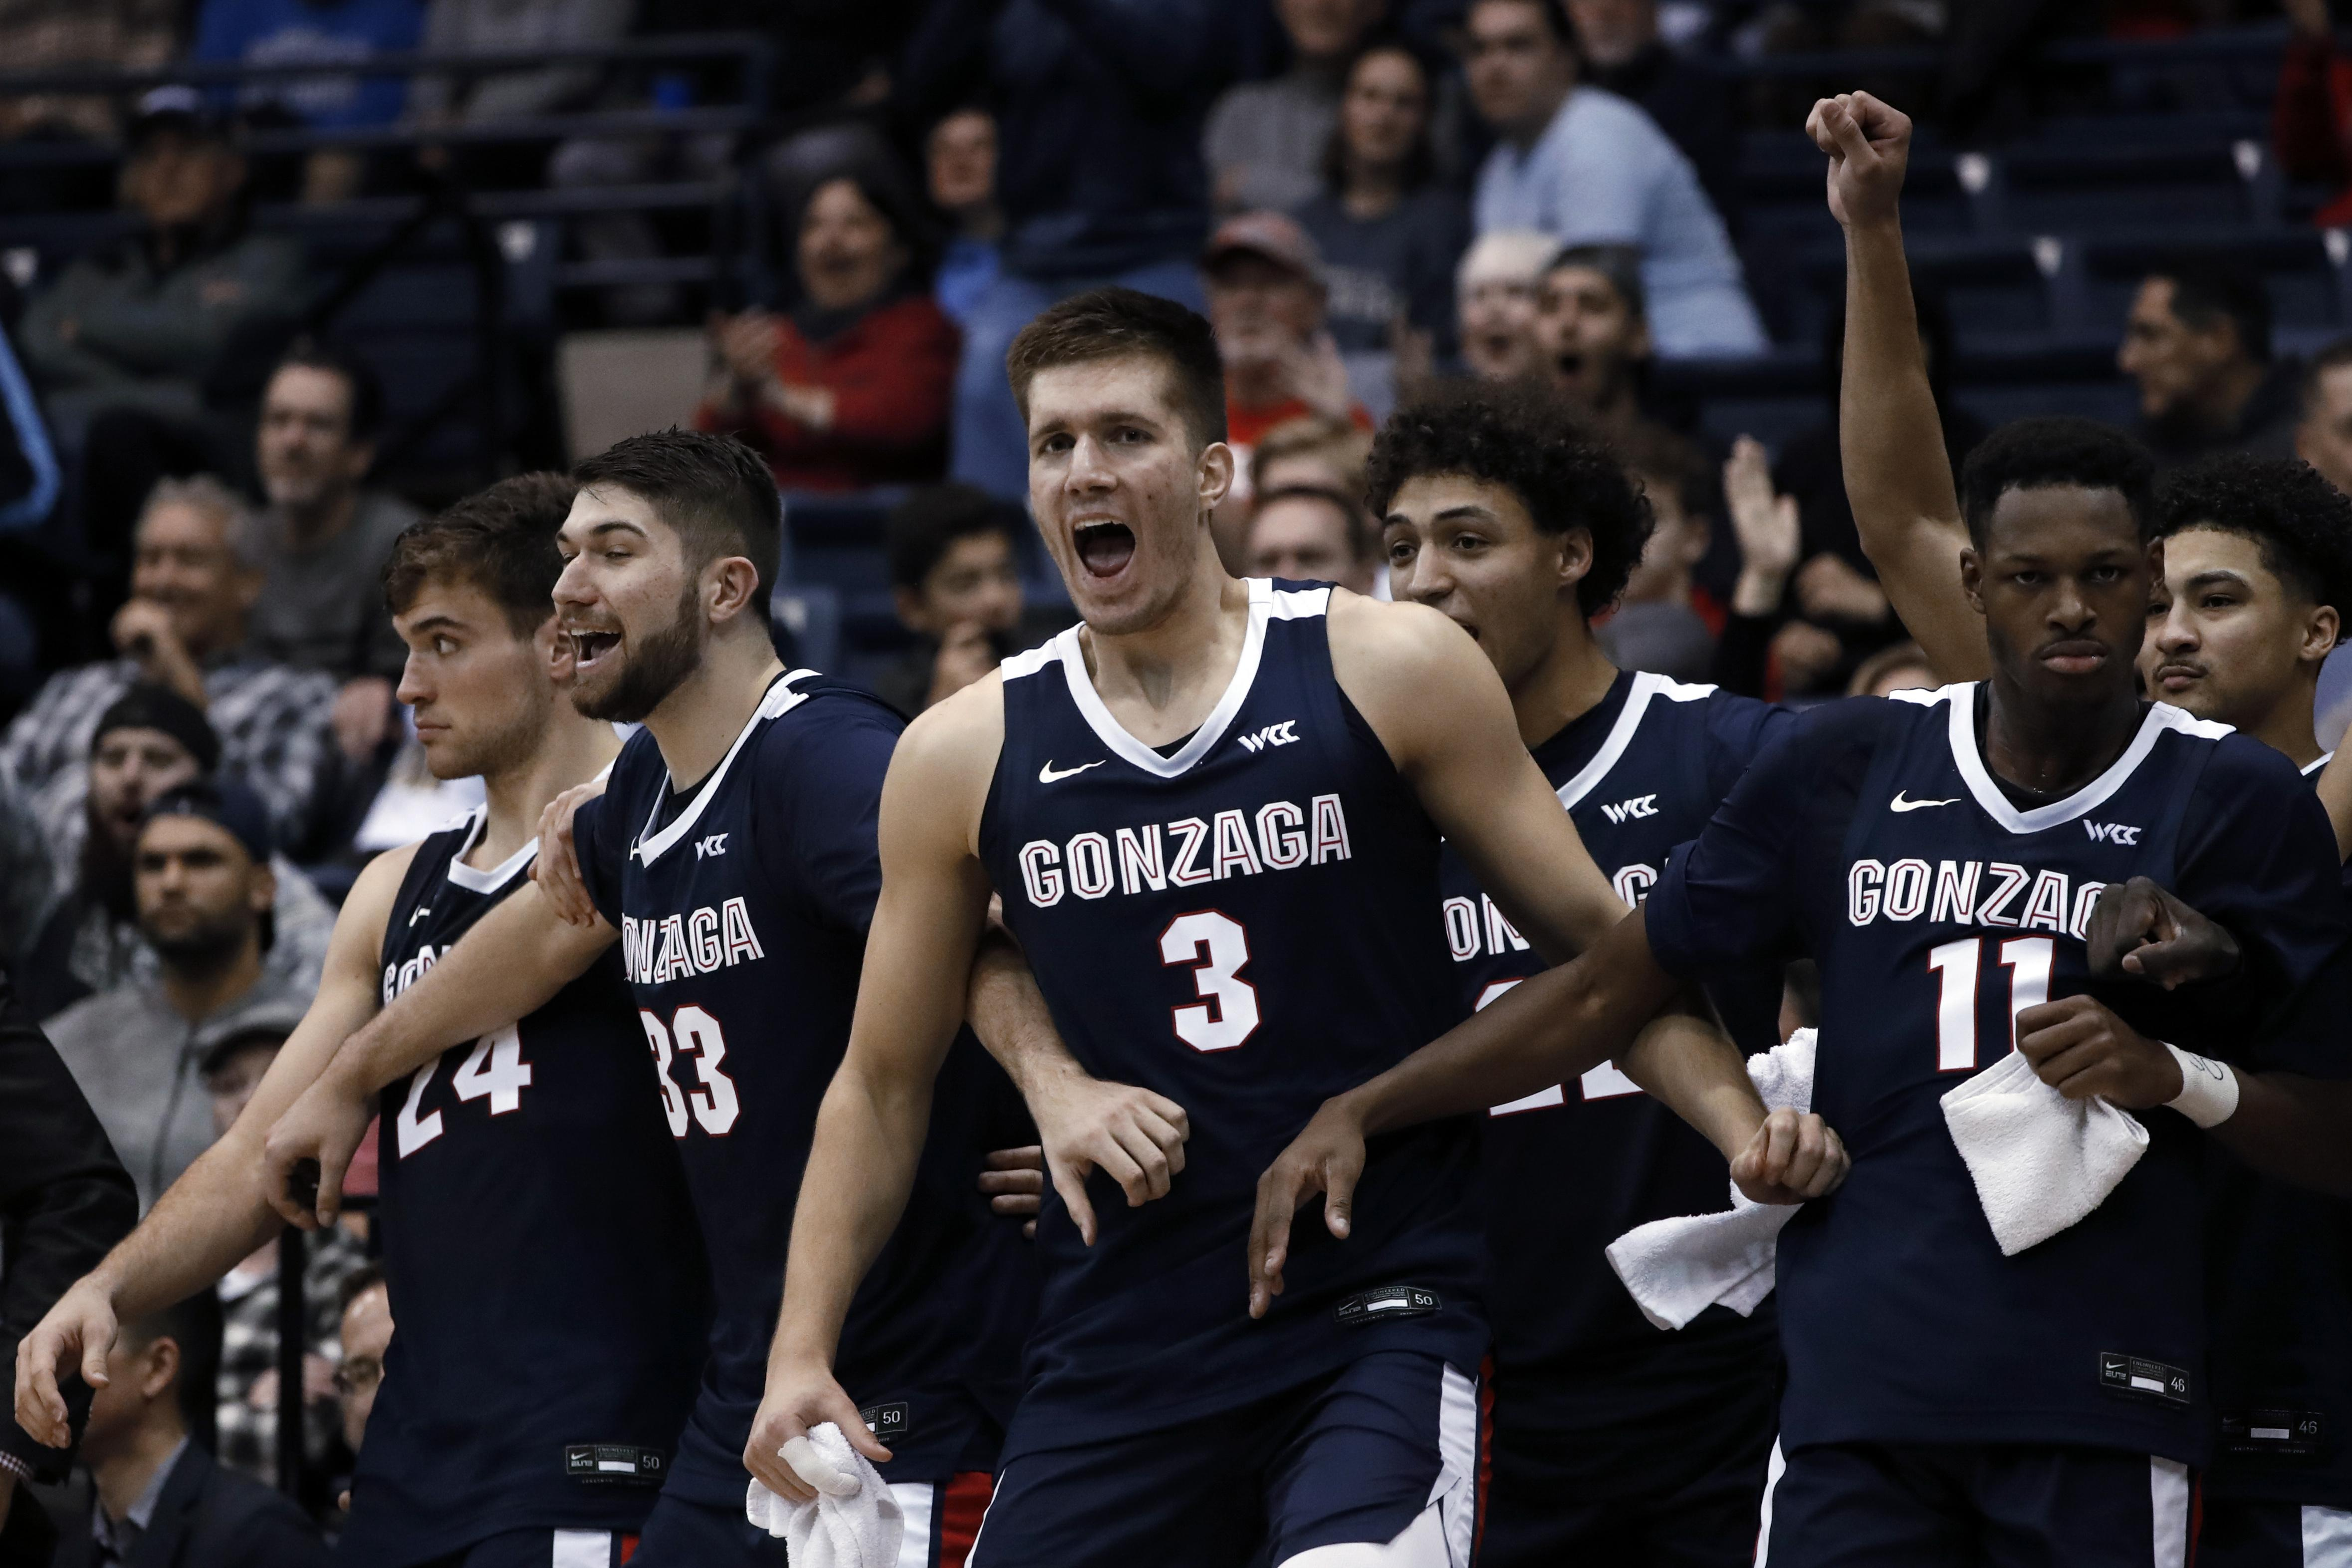 Analysis Top Ranked Gonzaga Faces Little Resistance In 94